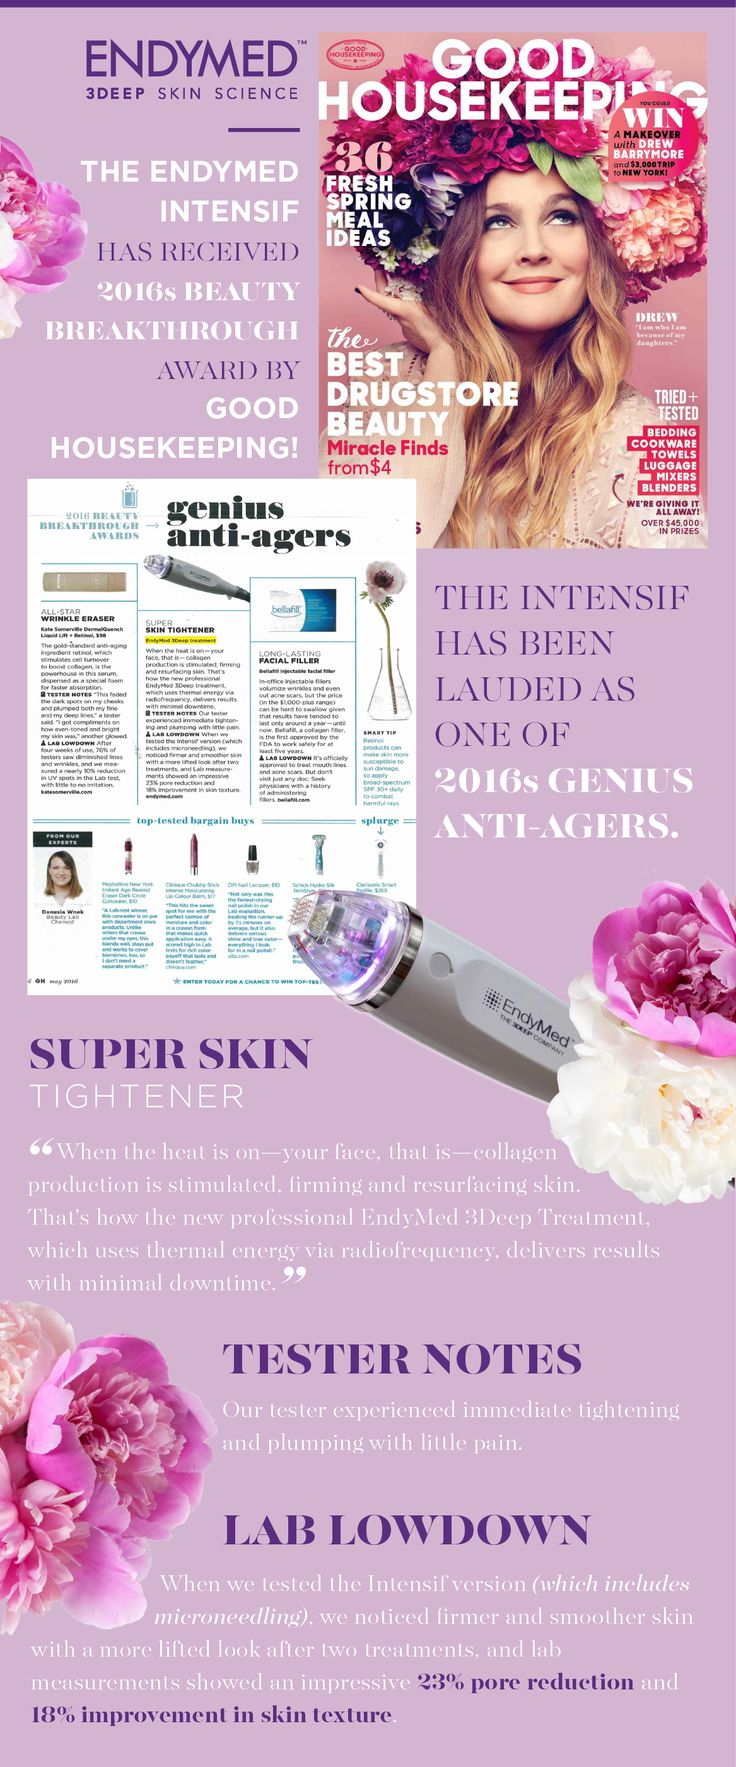 EndyMed has Received 2016s Beauty Breakthrough Award!